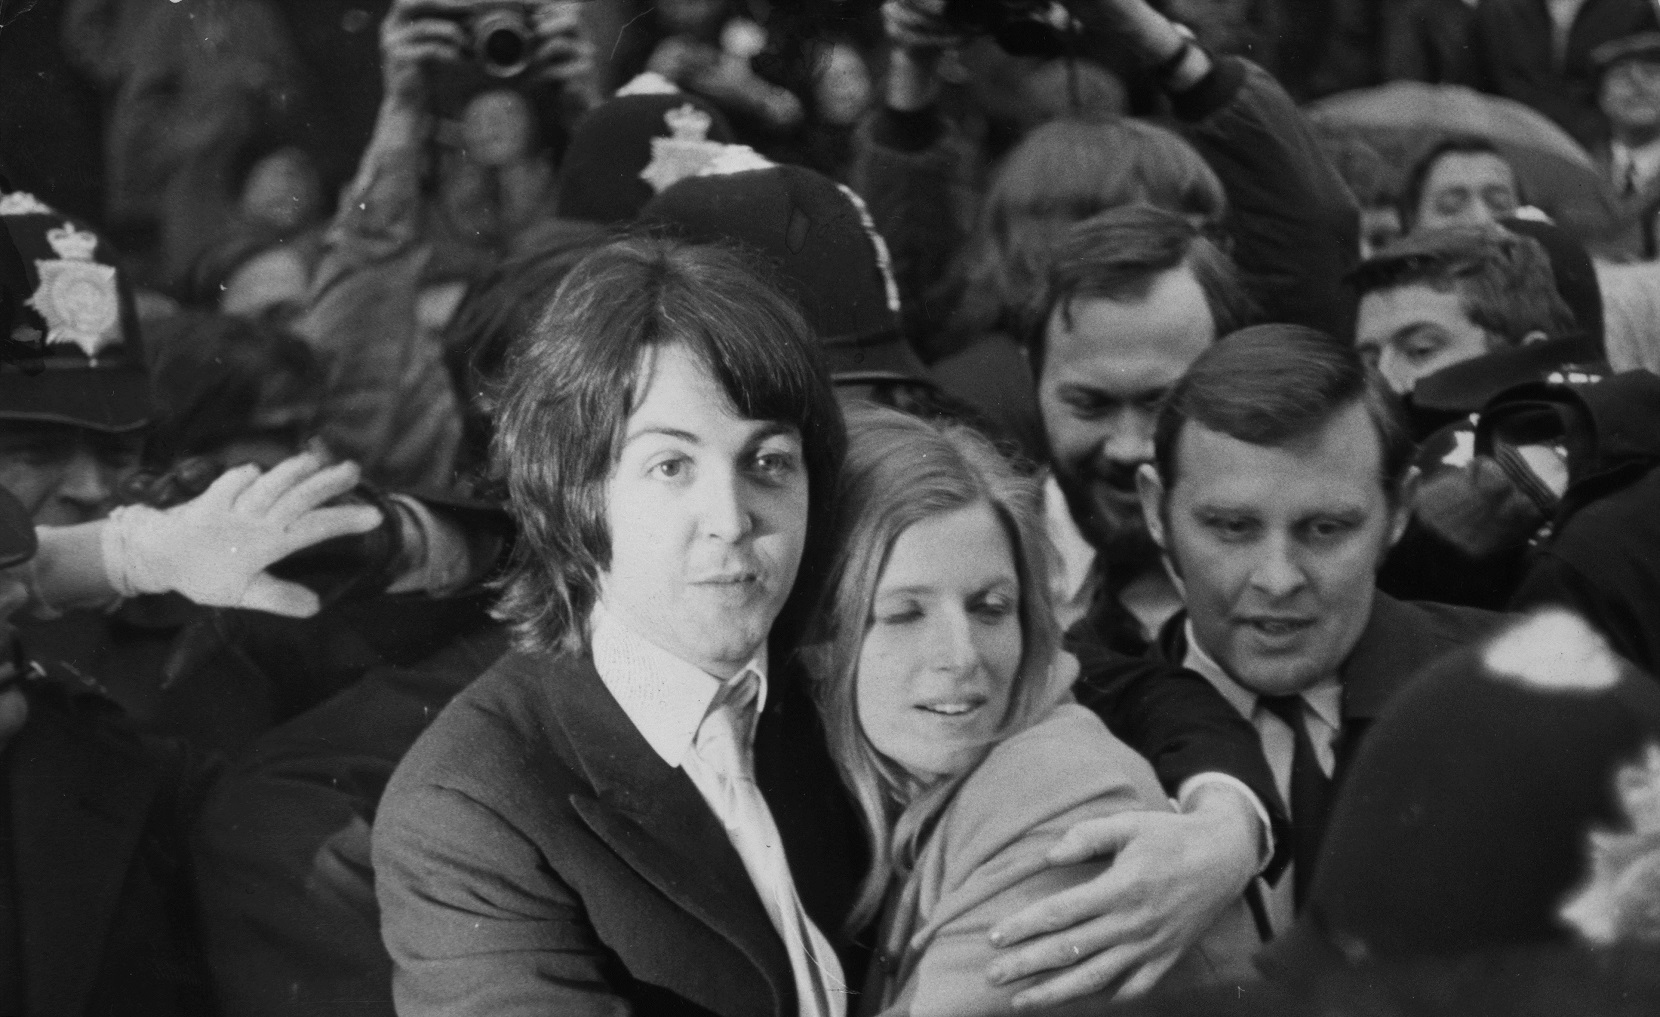 Paul McCartney marries Linda